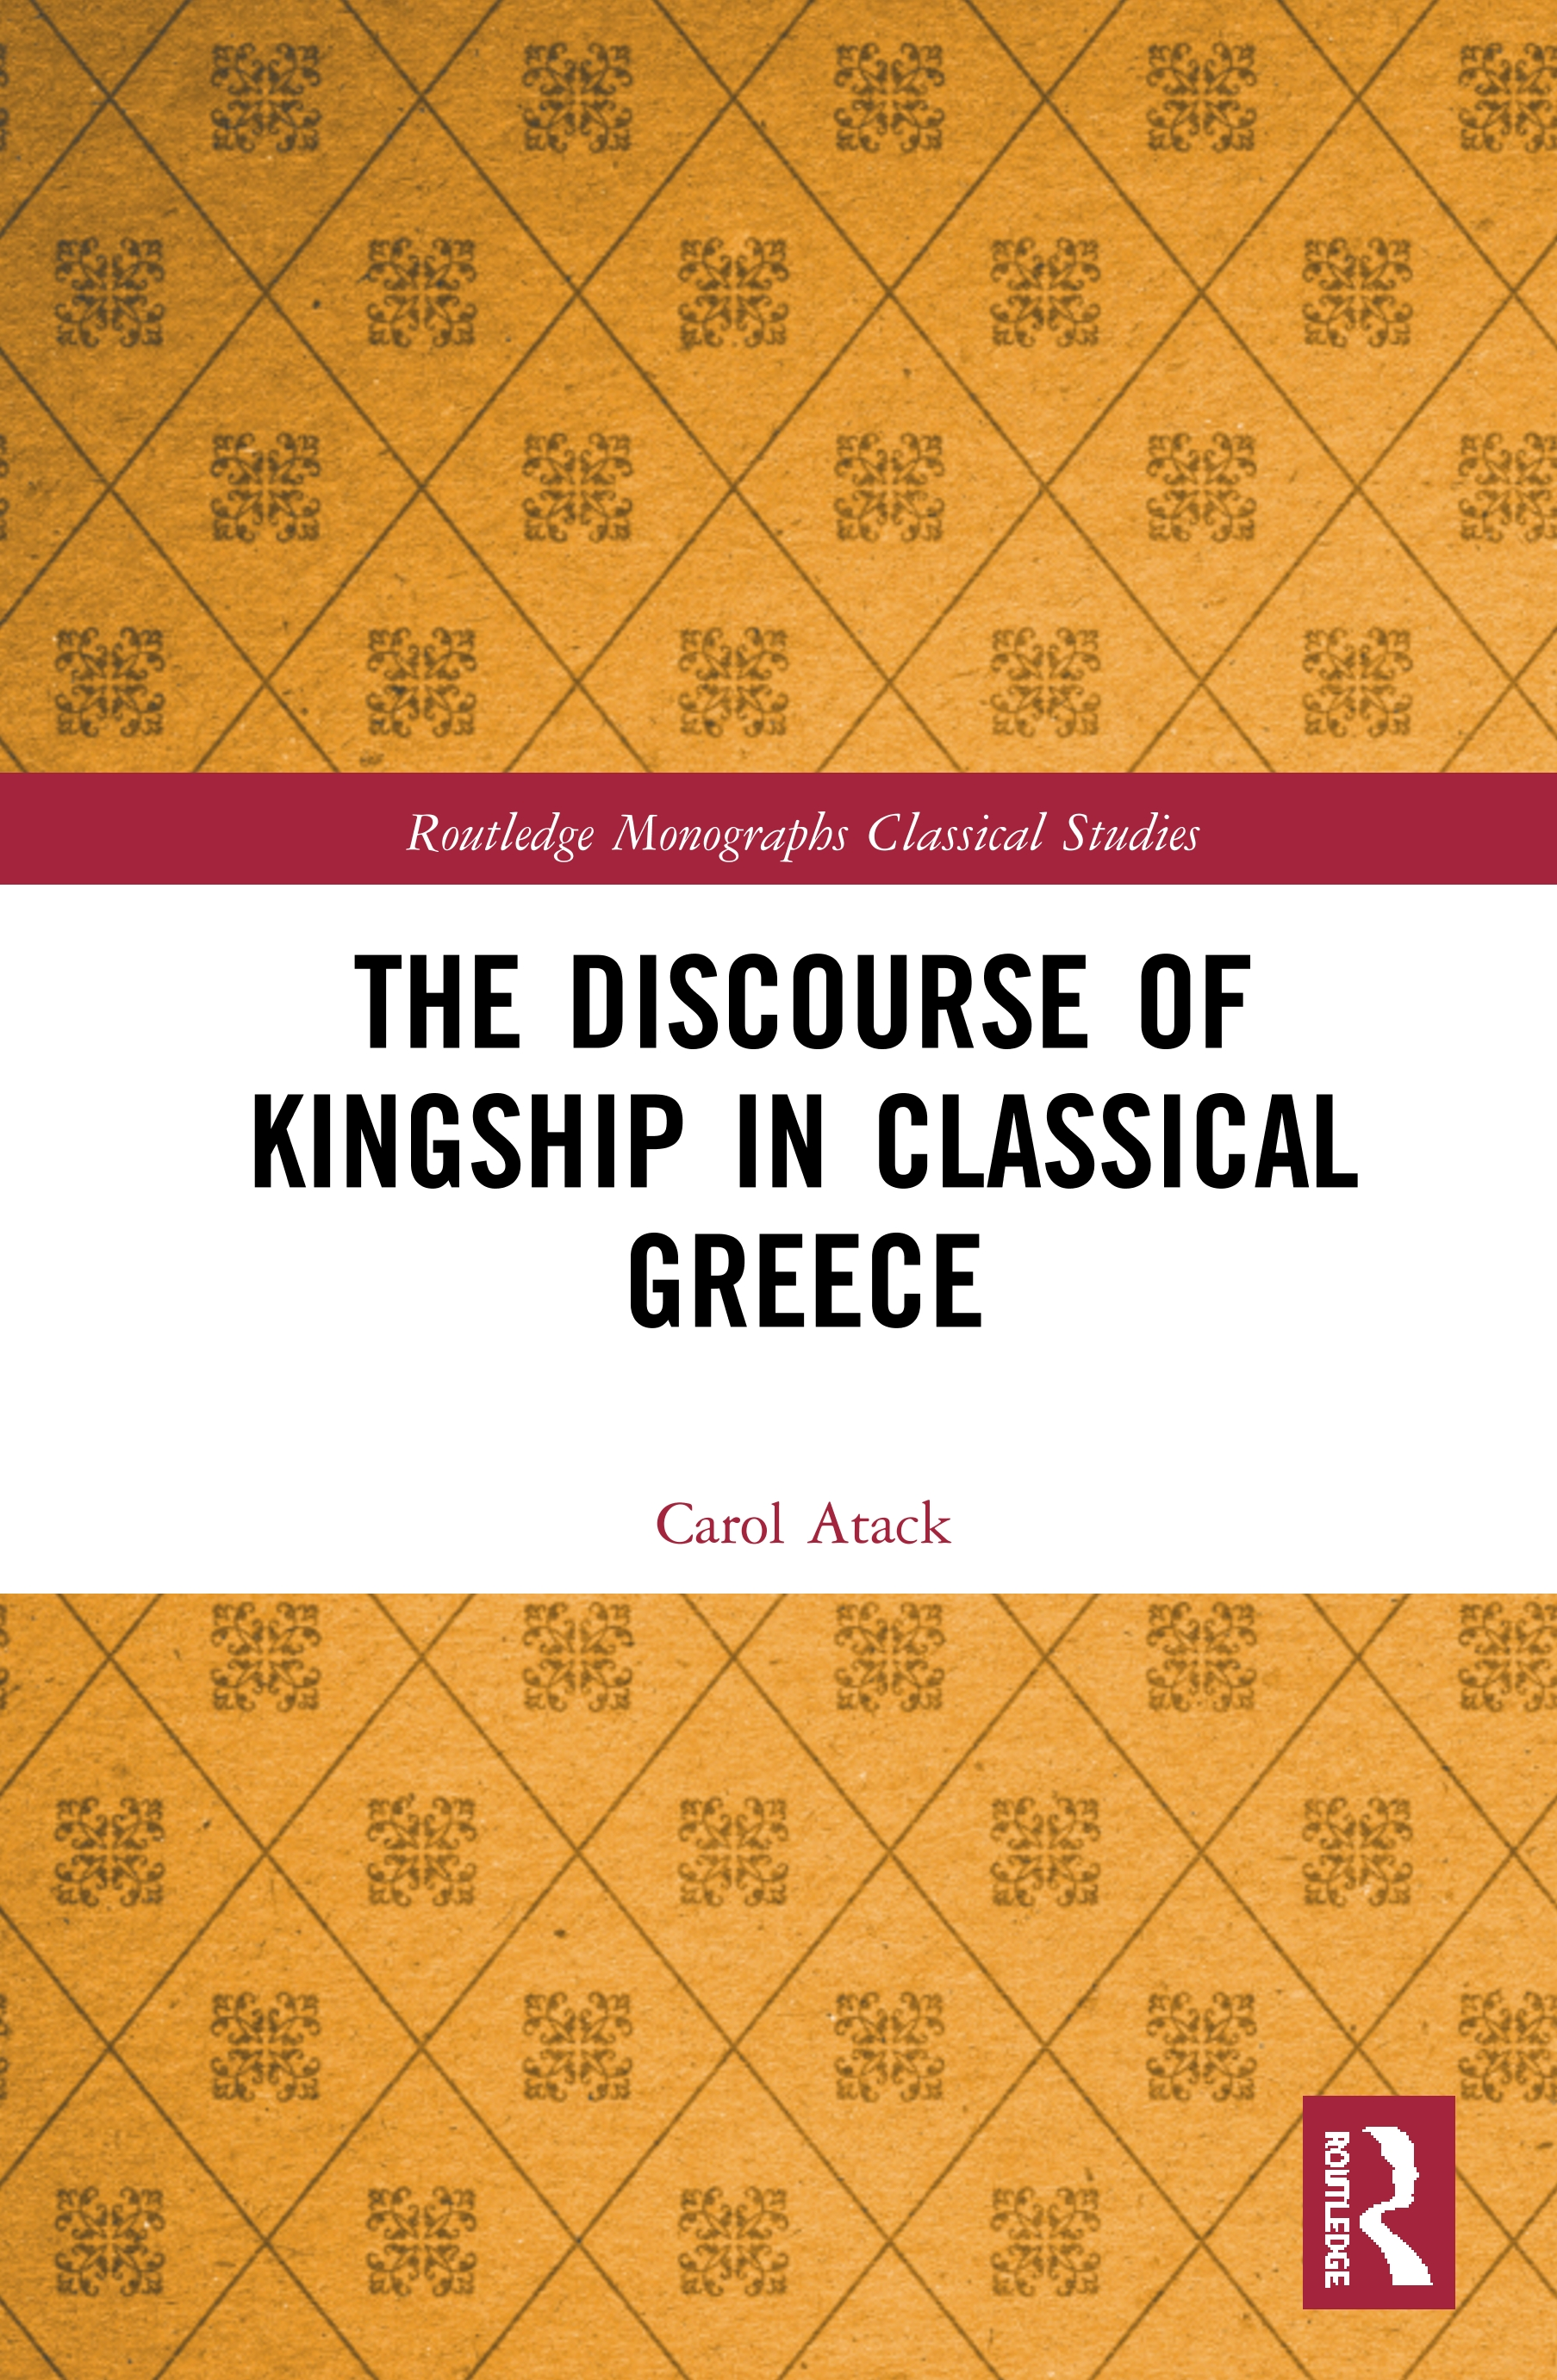 The Discourse of Kingship in Classical Greece book cover